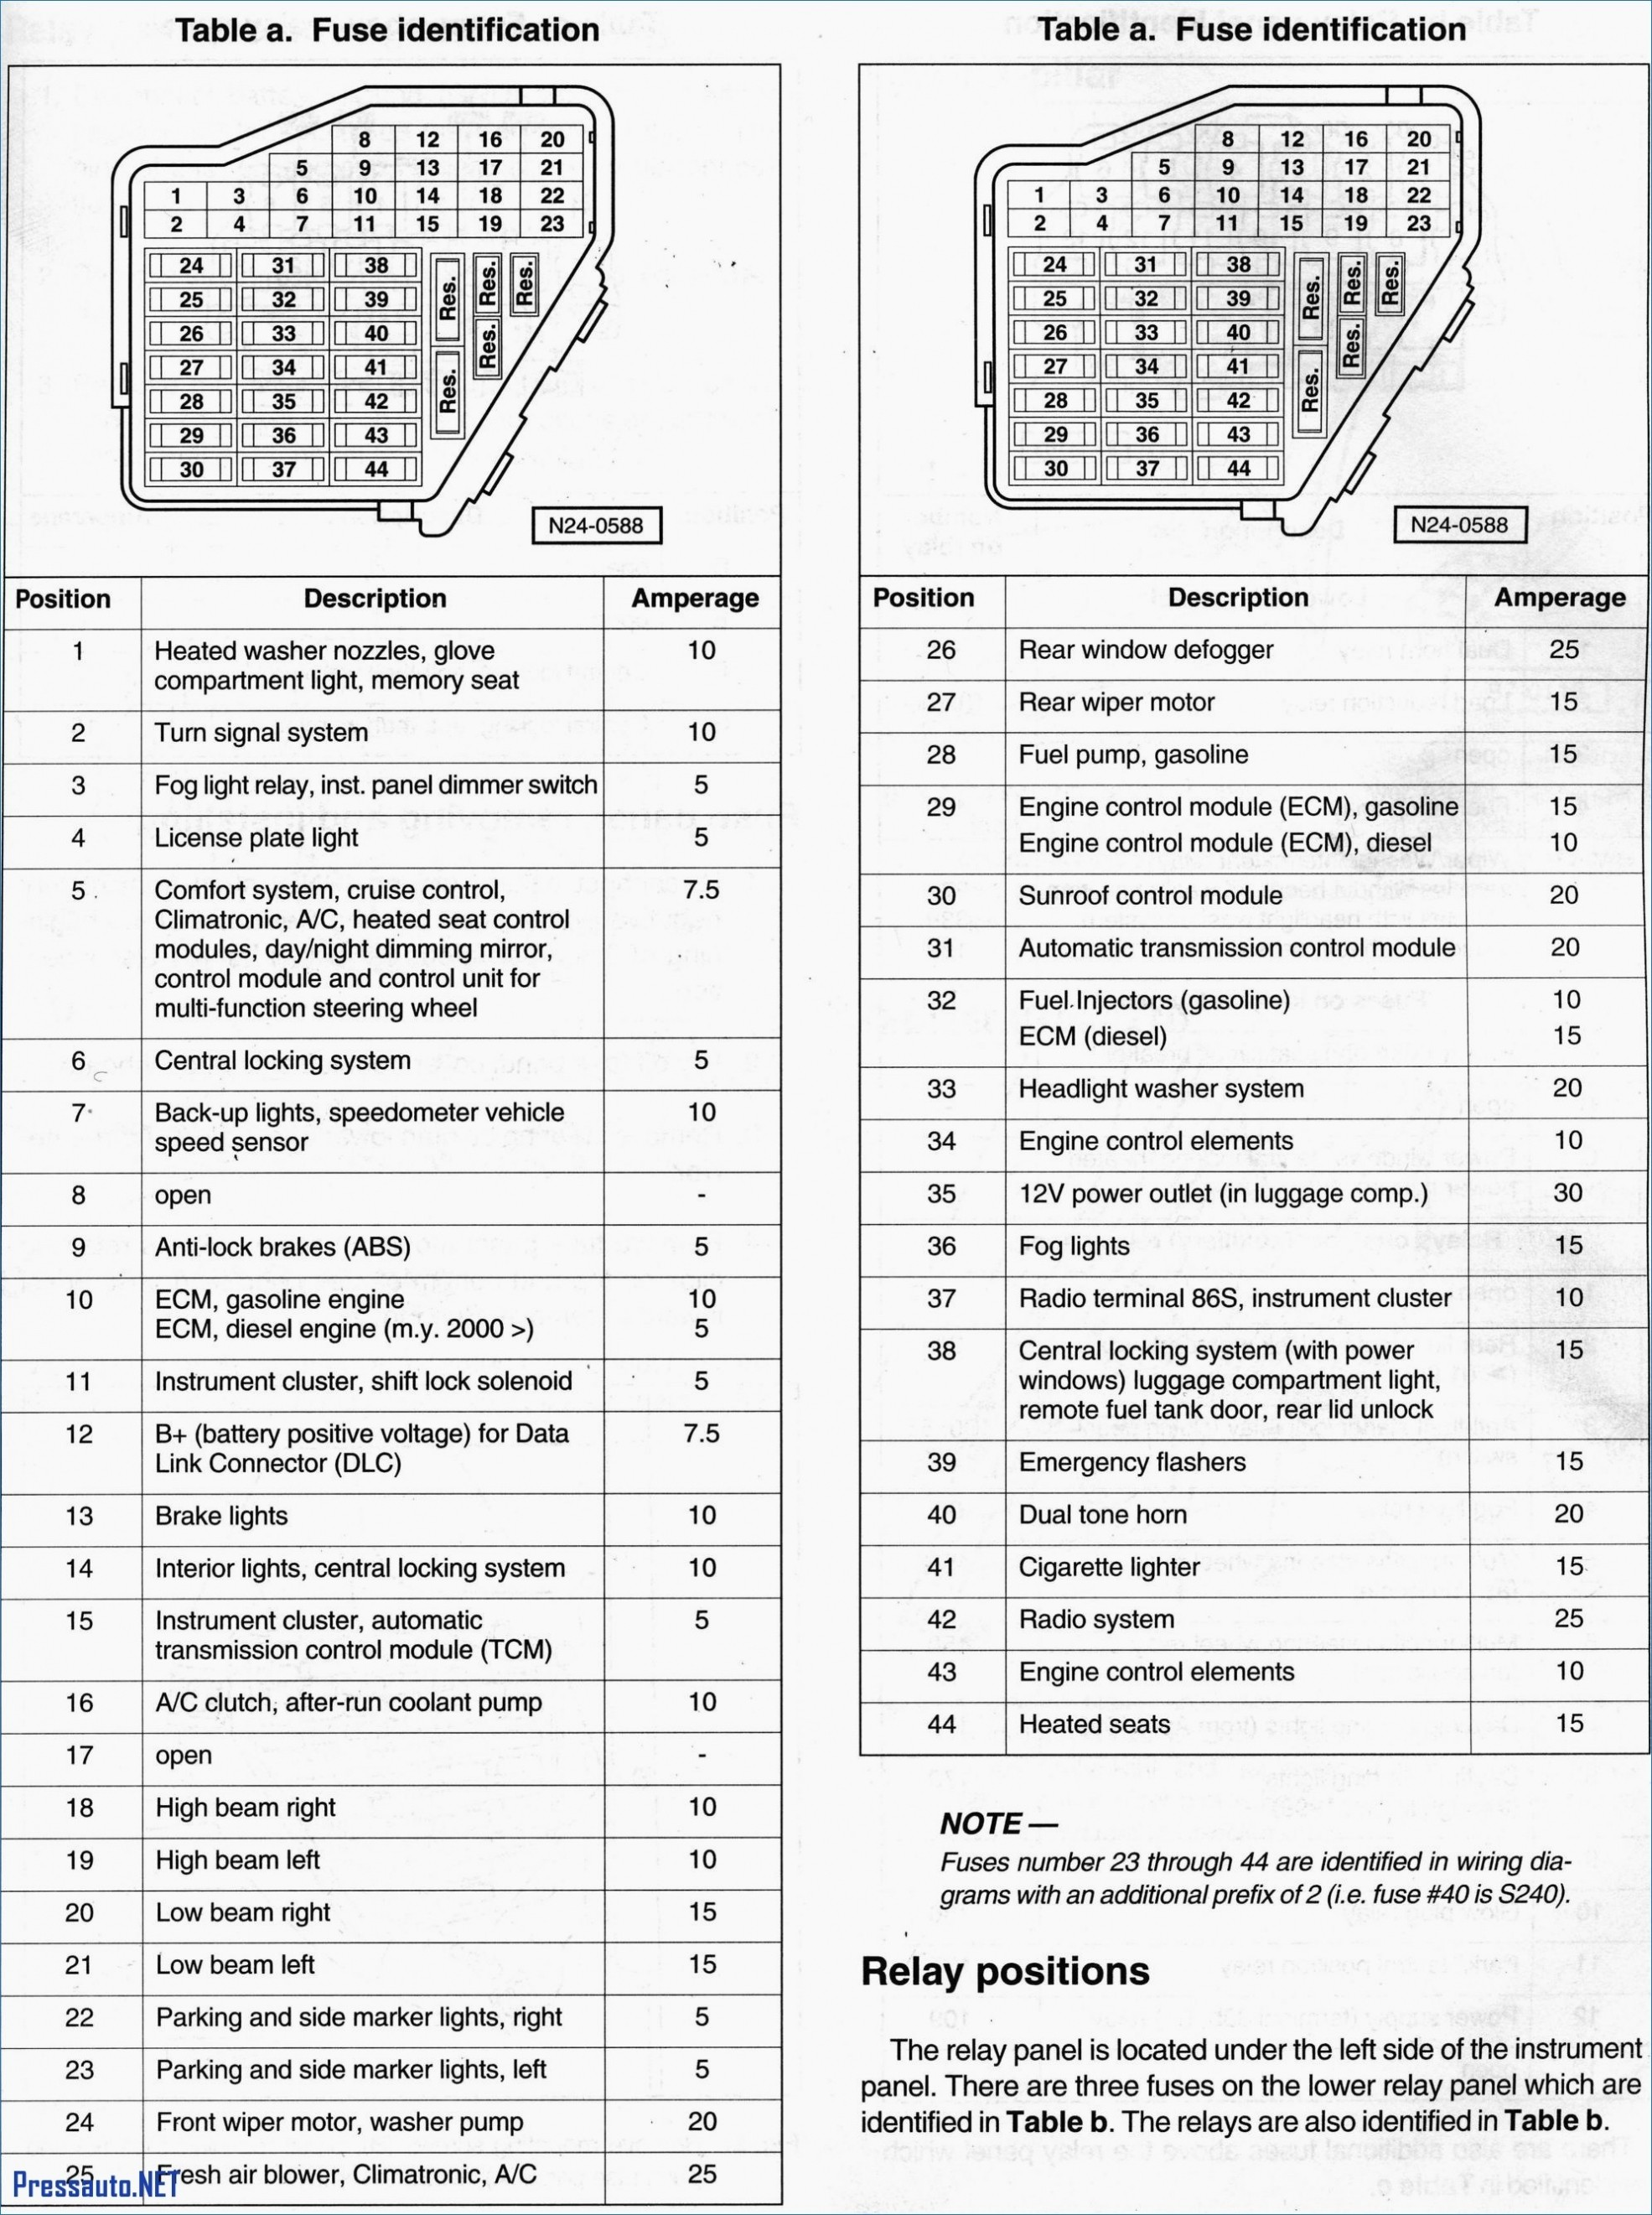 1998 Audi A6 Fuse Diagram - Wiring Diagram Data rich-activity -  rich-activity.portorhoca.it | Audi Rs6 Fuse Box |  | portorhoca.it